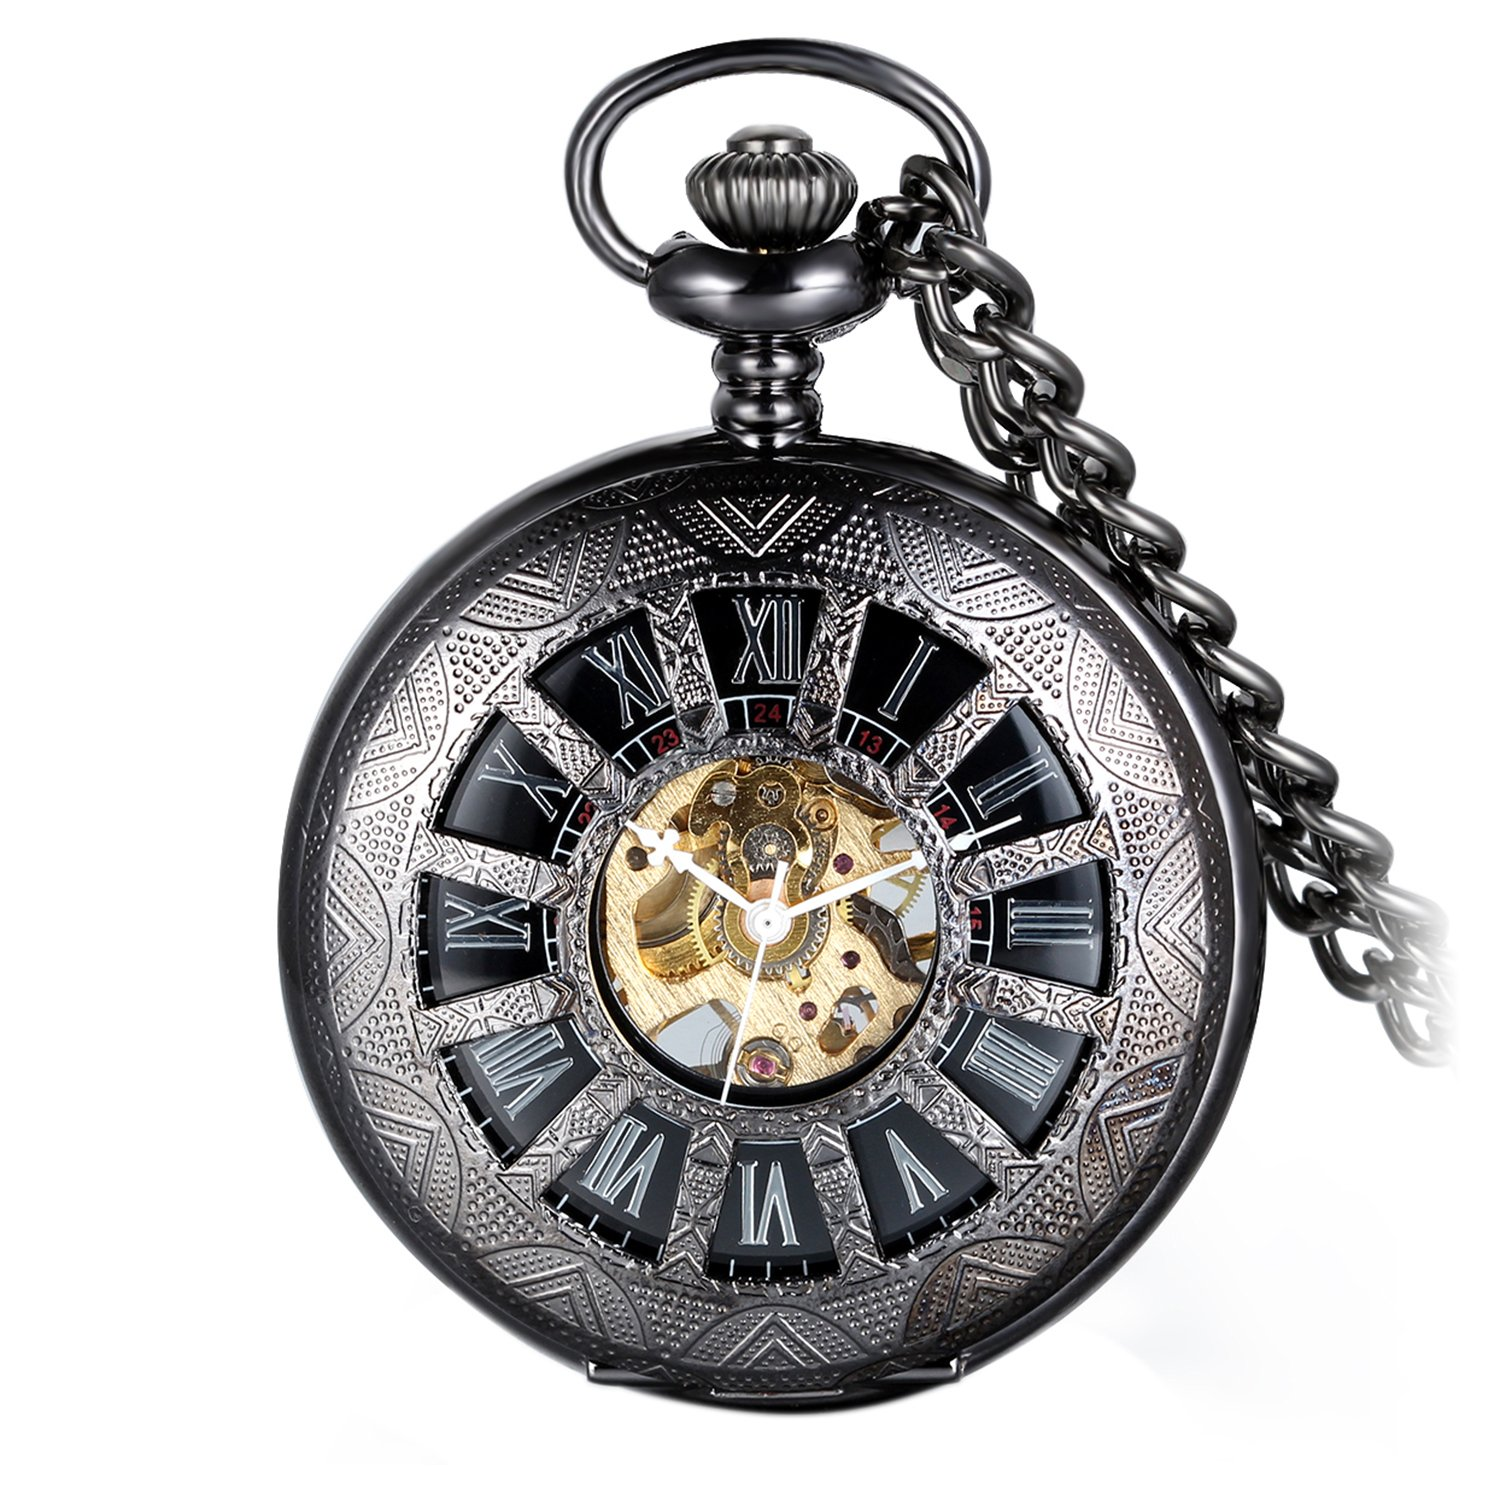 Avaner Retro Steampunk Half Hunter Black Hollow Skeleton Hand Wind Mechanical Roman Numeral Pocket Watch with Chain Gift for Men